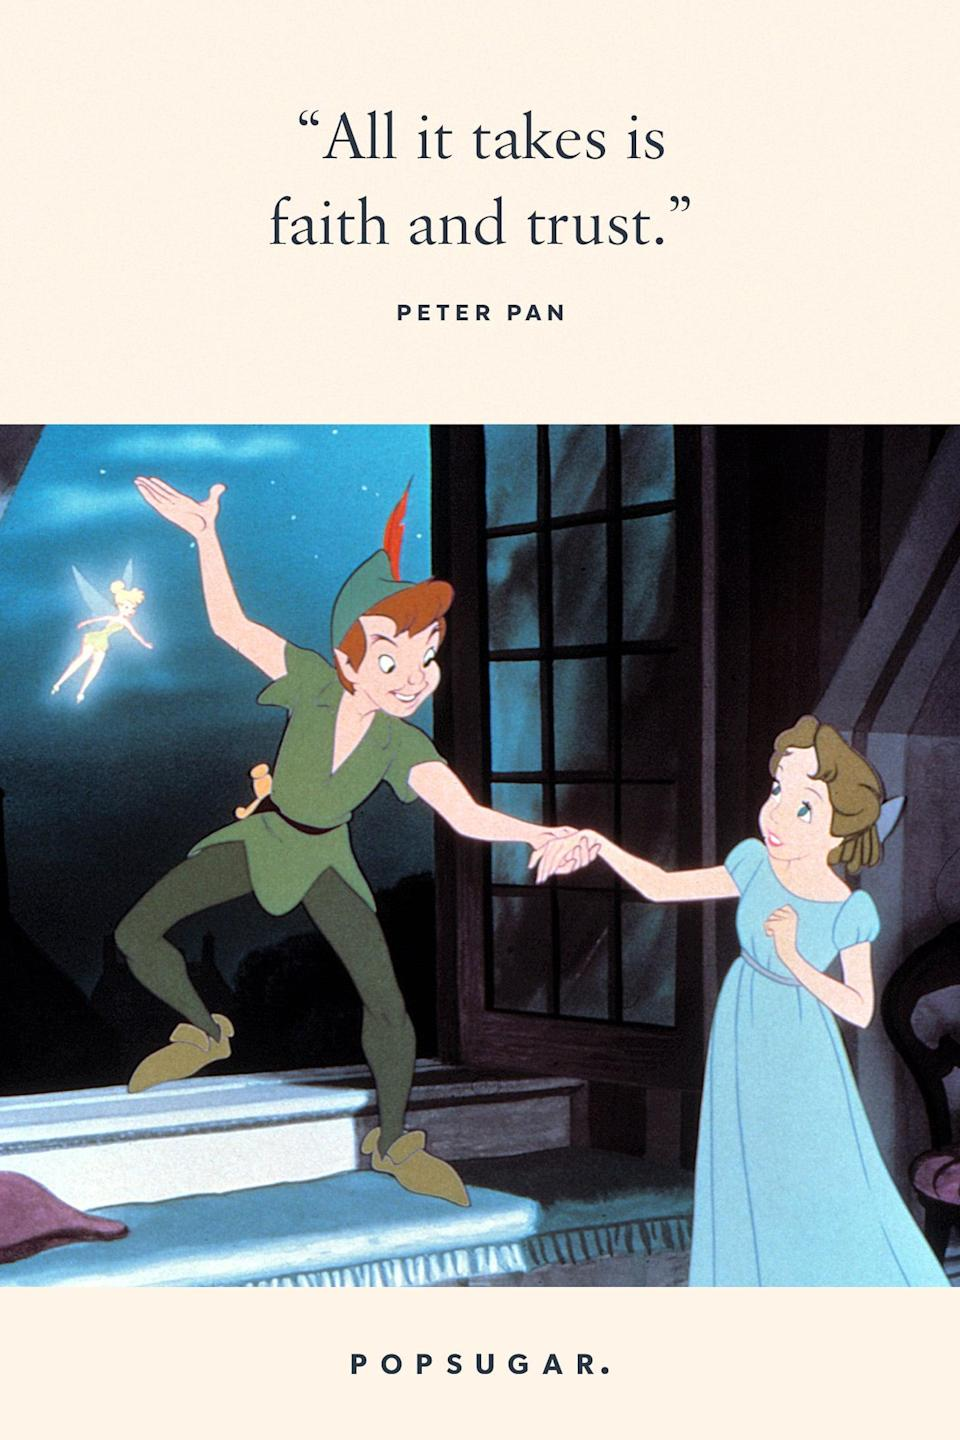 "<p>""All it takes is faith and trust."" - Peter Pan, <b>Peter Pan</b></p>"